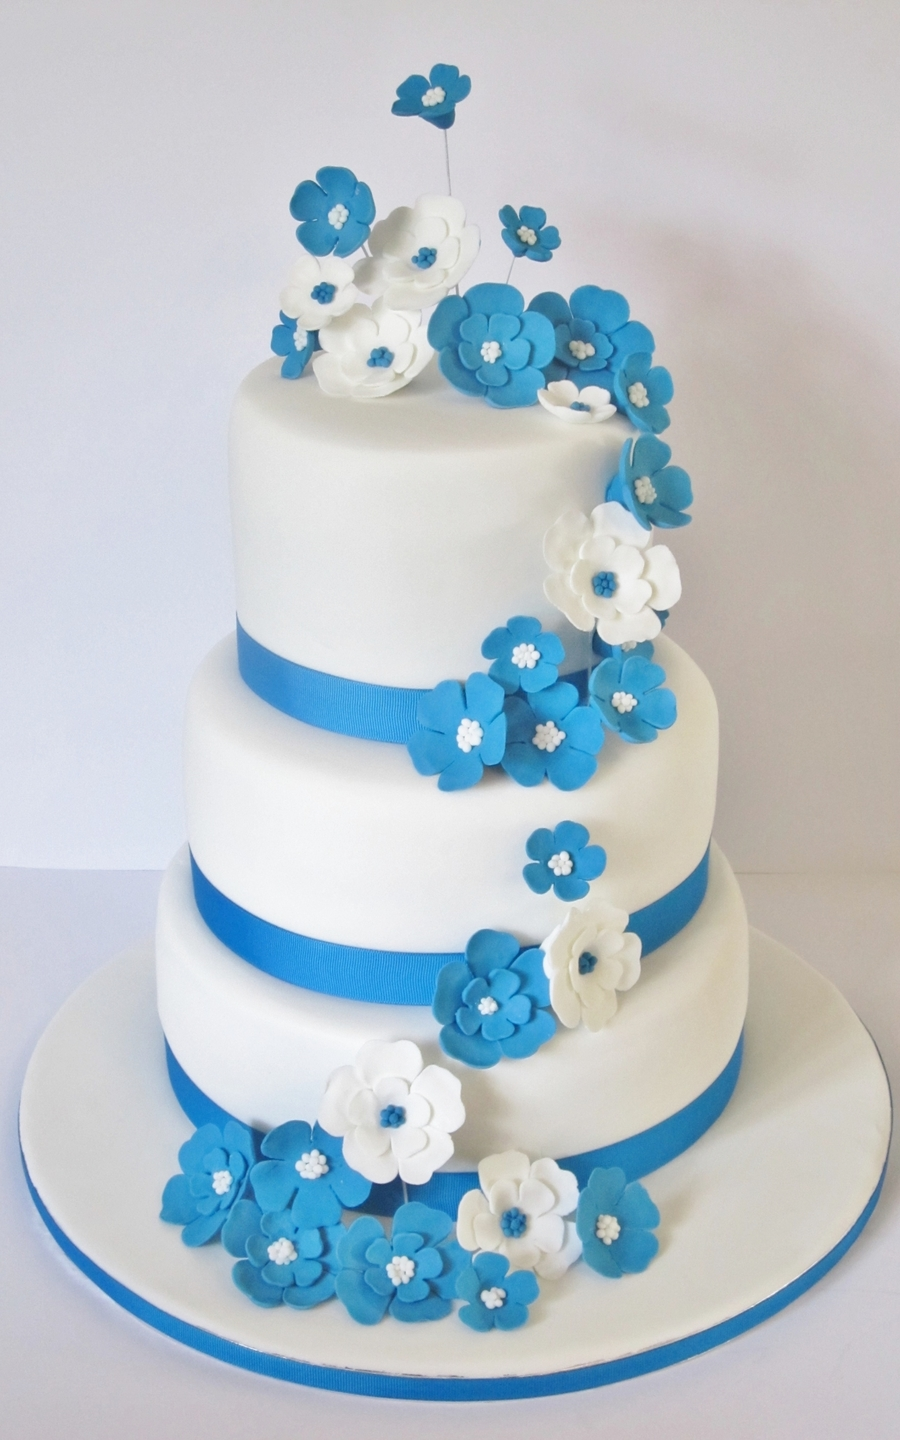 Blue And White Wedding Cake Wth Fondant Flowers - CakeCentral.com